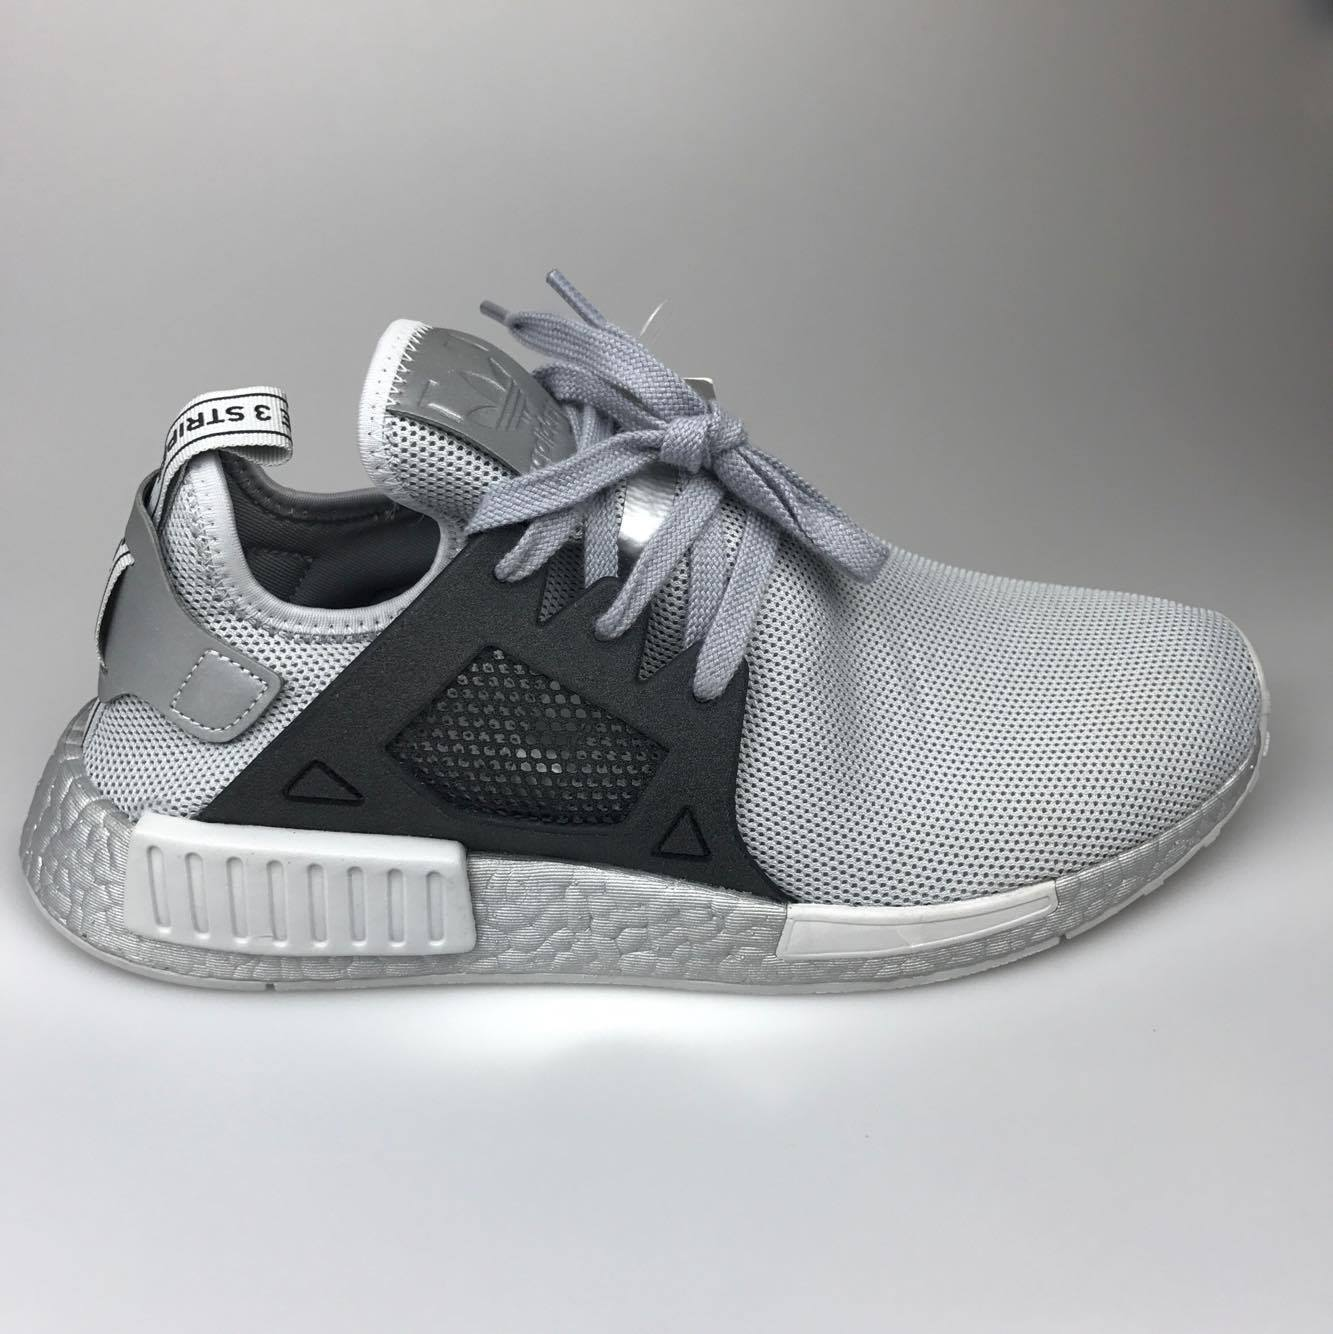 Adidas NMD XR1 Olive Duck Camo Mens Size 11 Cheap NMD Shoes